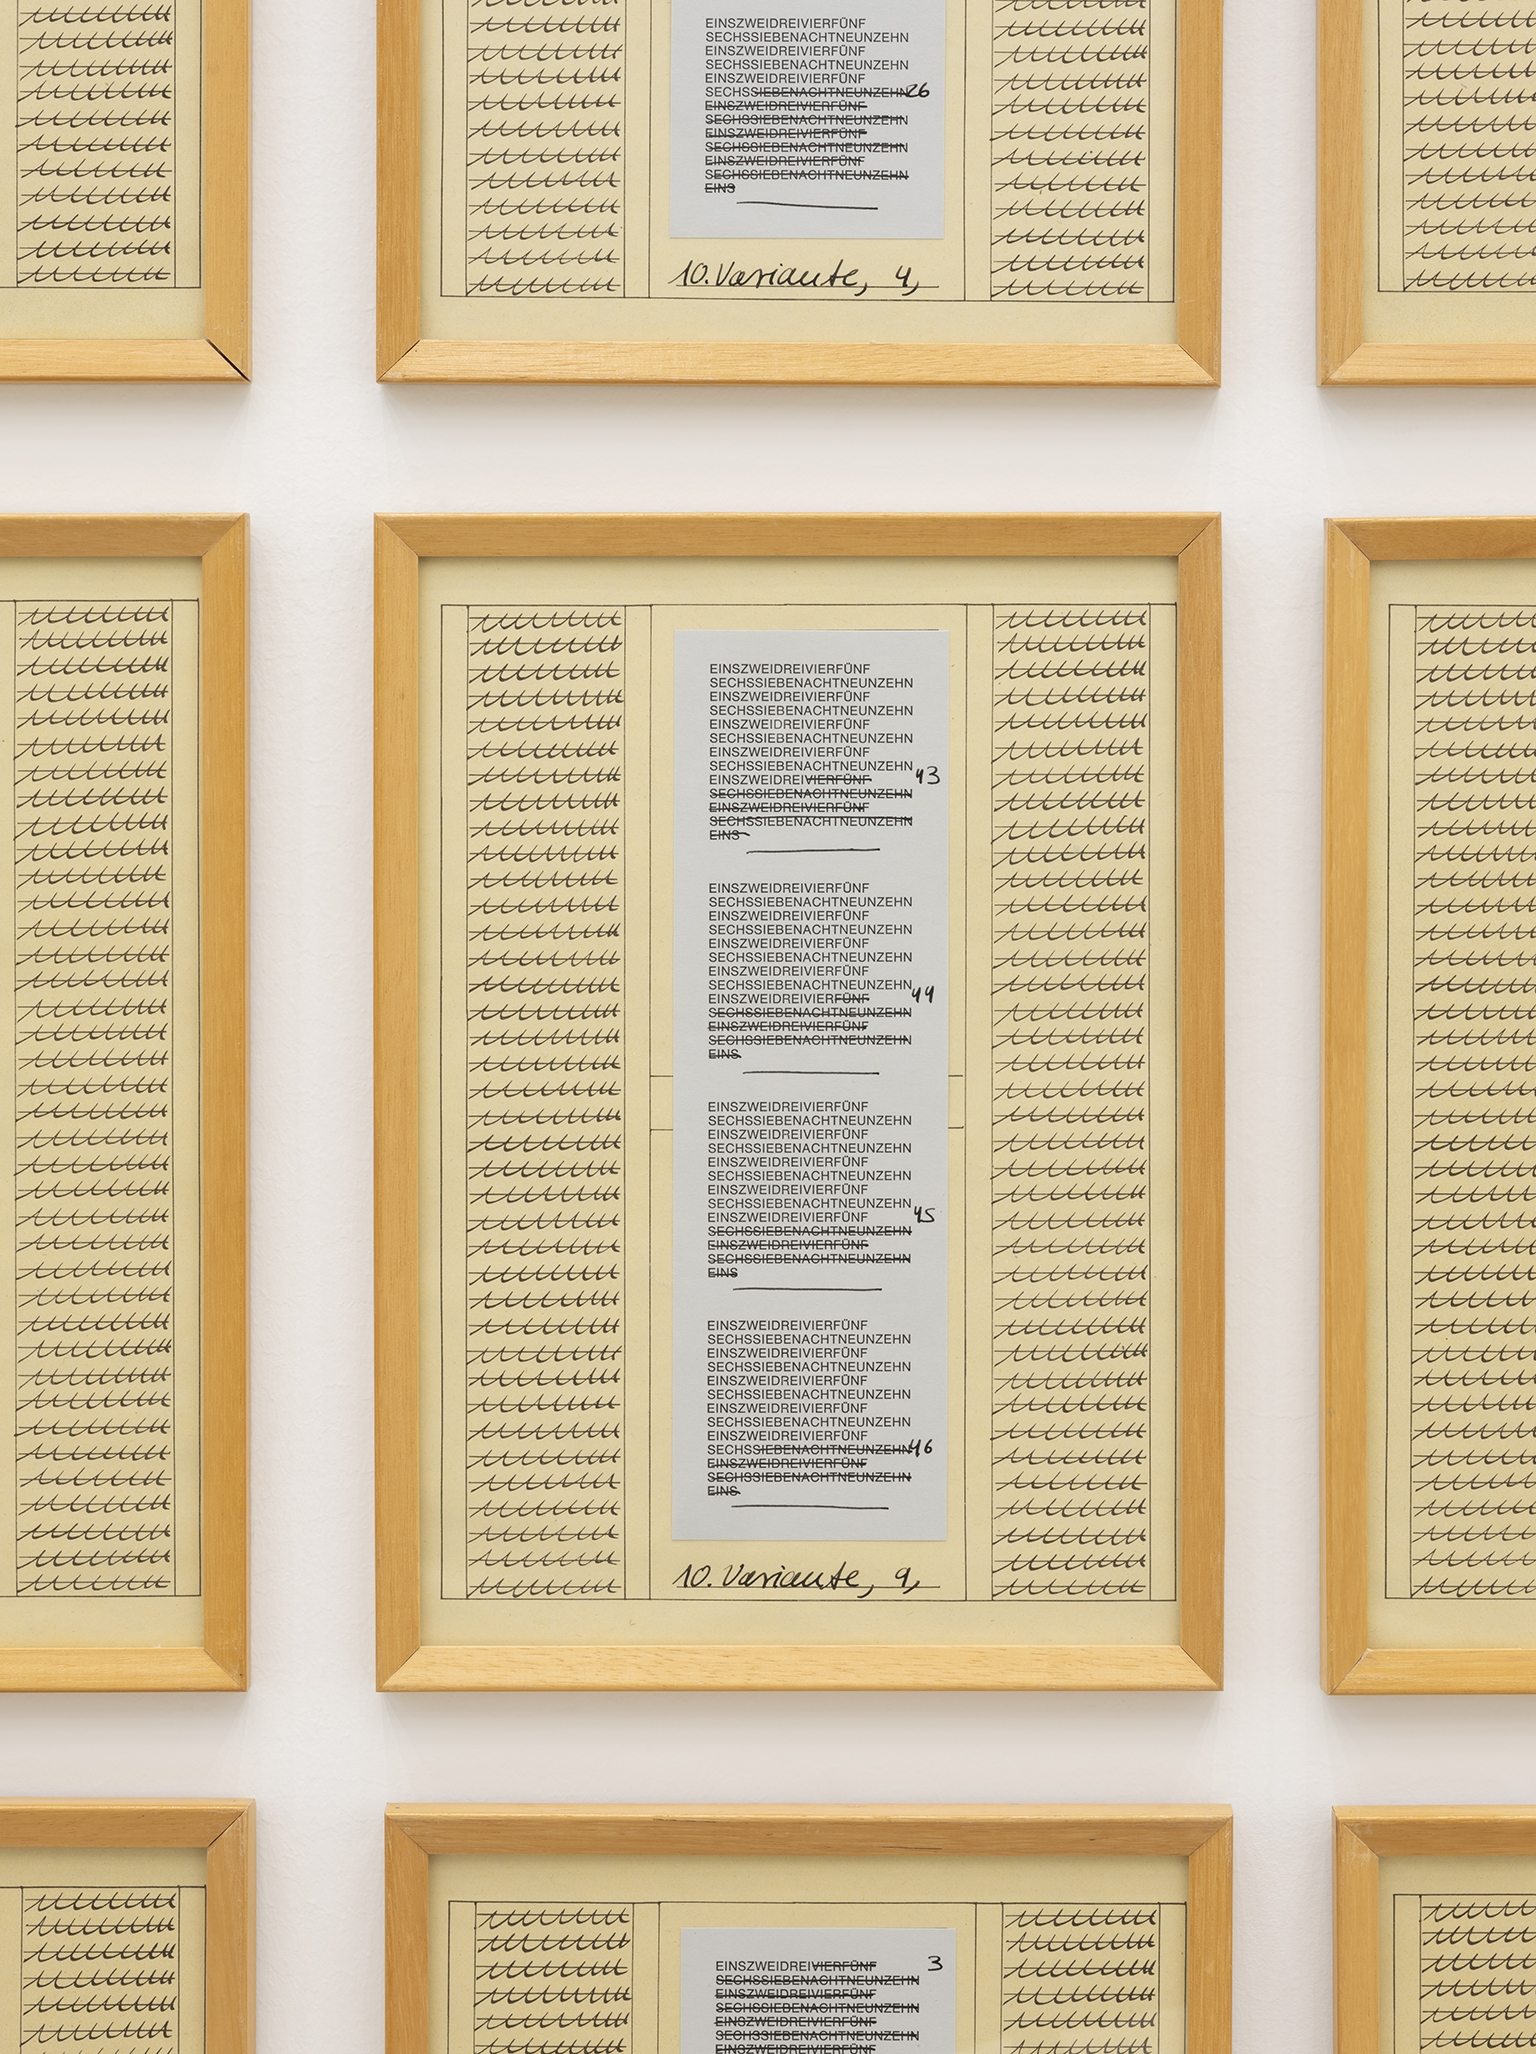 Hanne Darboven, 10. Variante (detail), 1975, 15 parts and 1 index, ink, collage, silkscreen print on paper, each 11 x 8 in. (29 x 21 cm) by